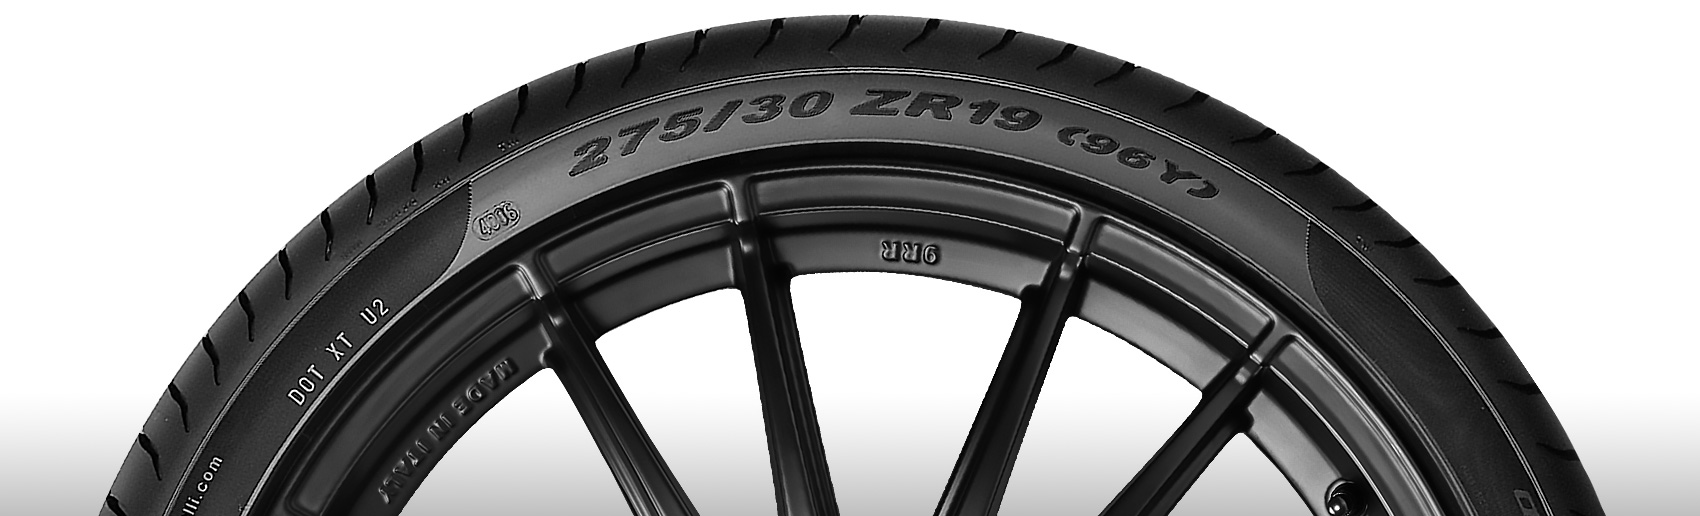 Tyre Size Find The Right Size For Your Car Pirelli